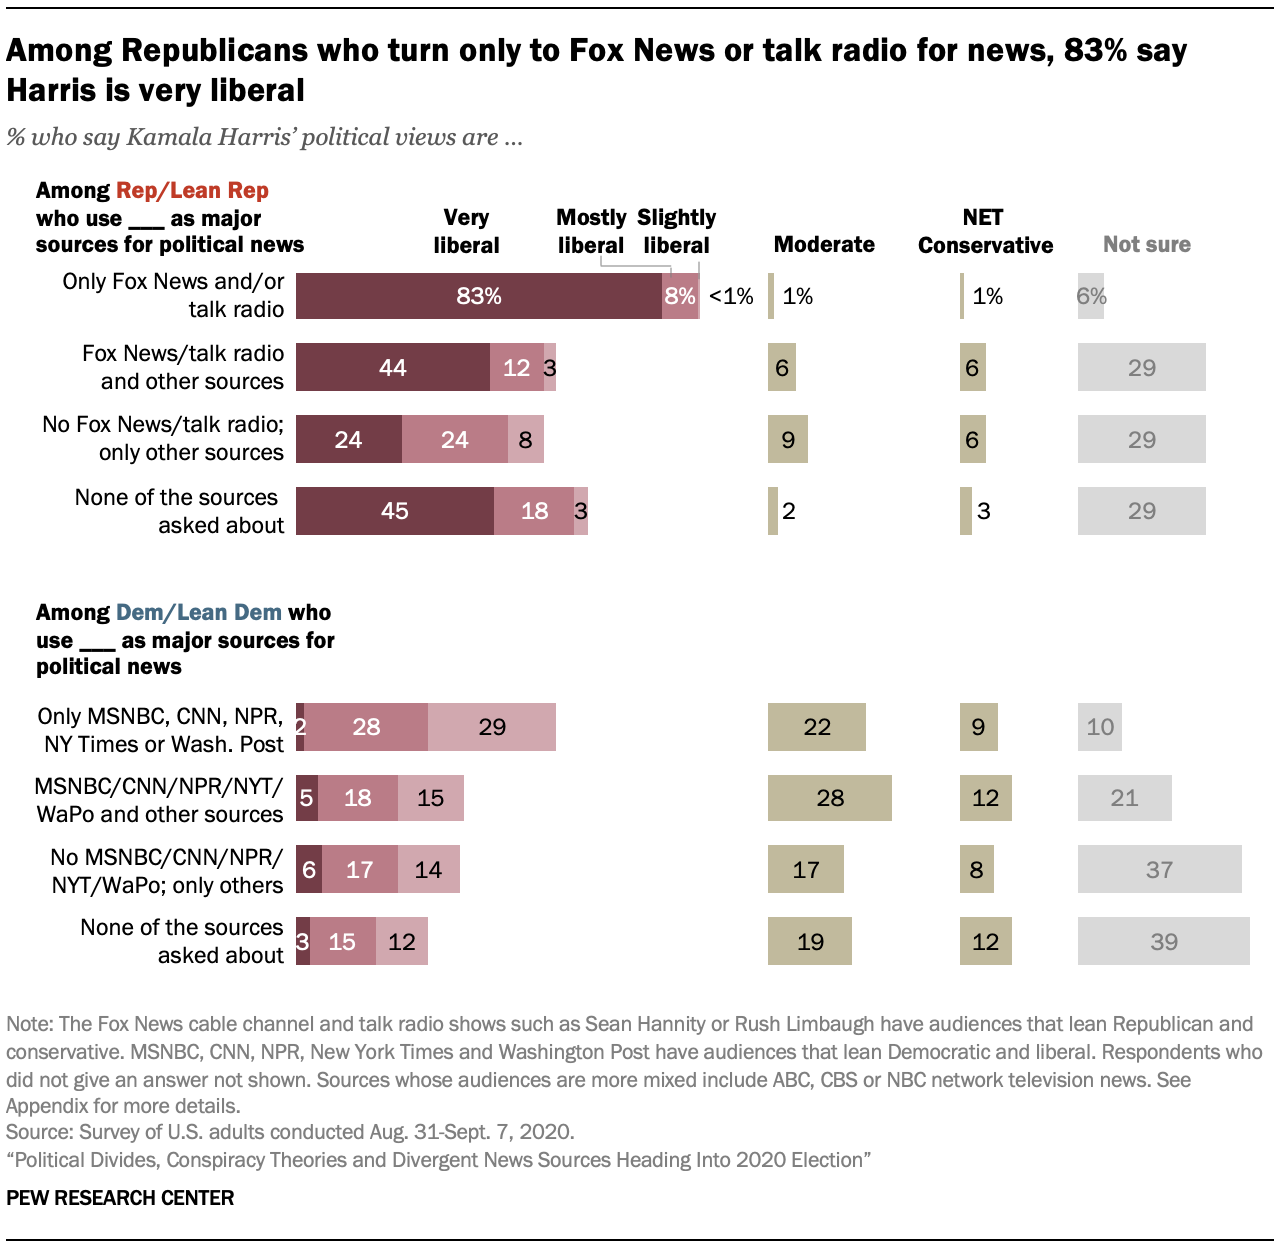 Among Republicans who turn only to Fox News or talk radio for news, 83% say Harris is very liberal